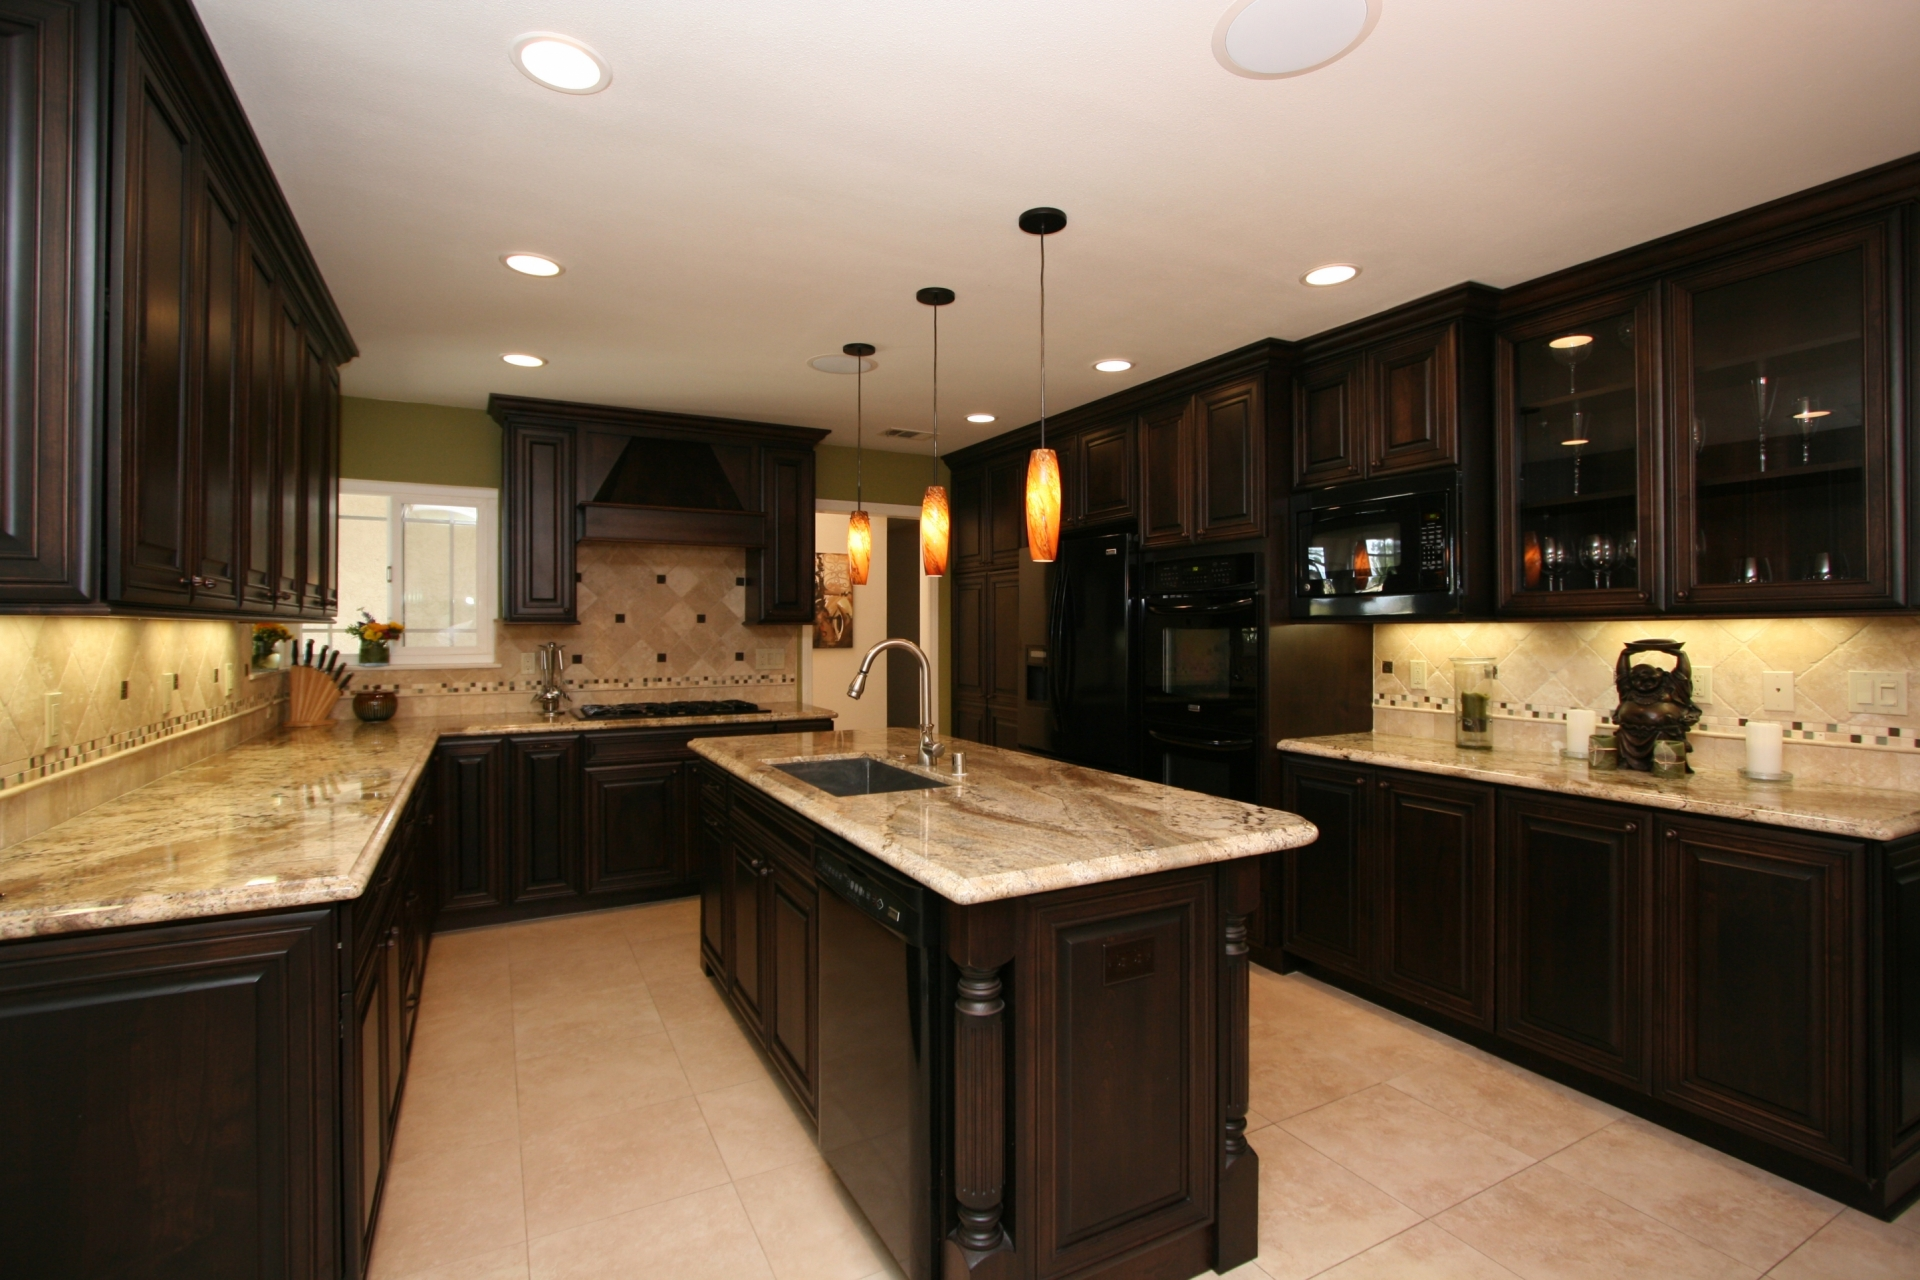 Kitchen Remodel Dark Cabinets kitchen remodeling contractor: cabinets, counters, flooring